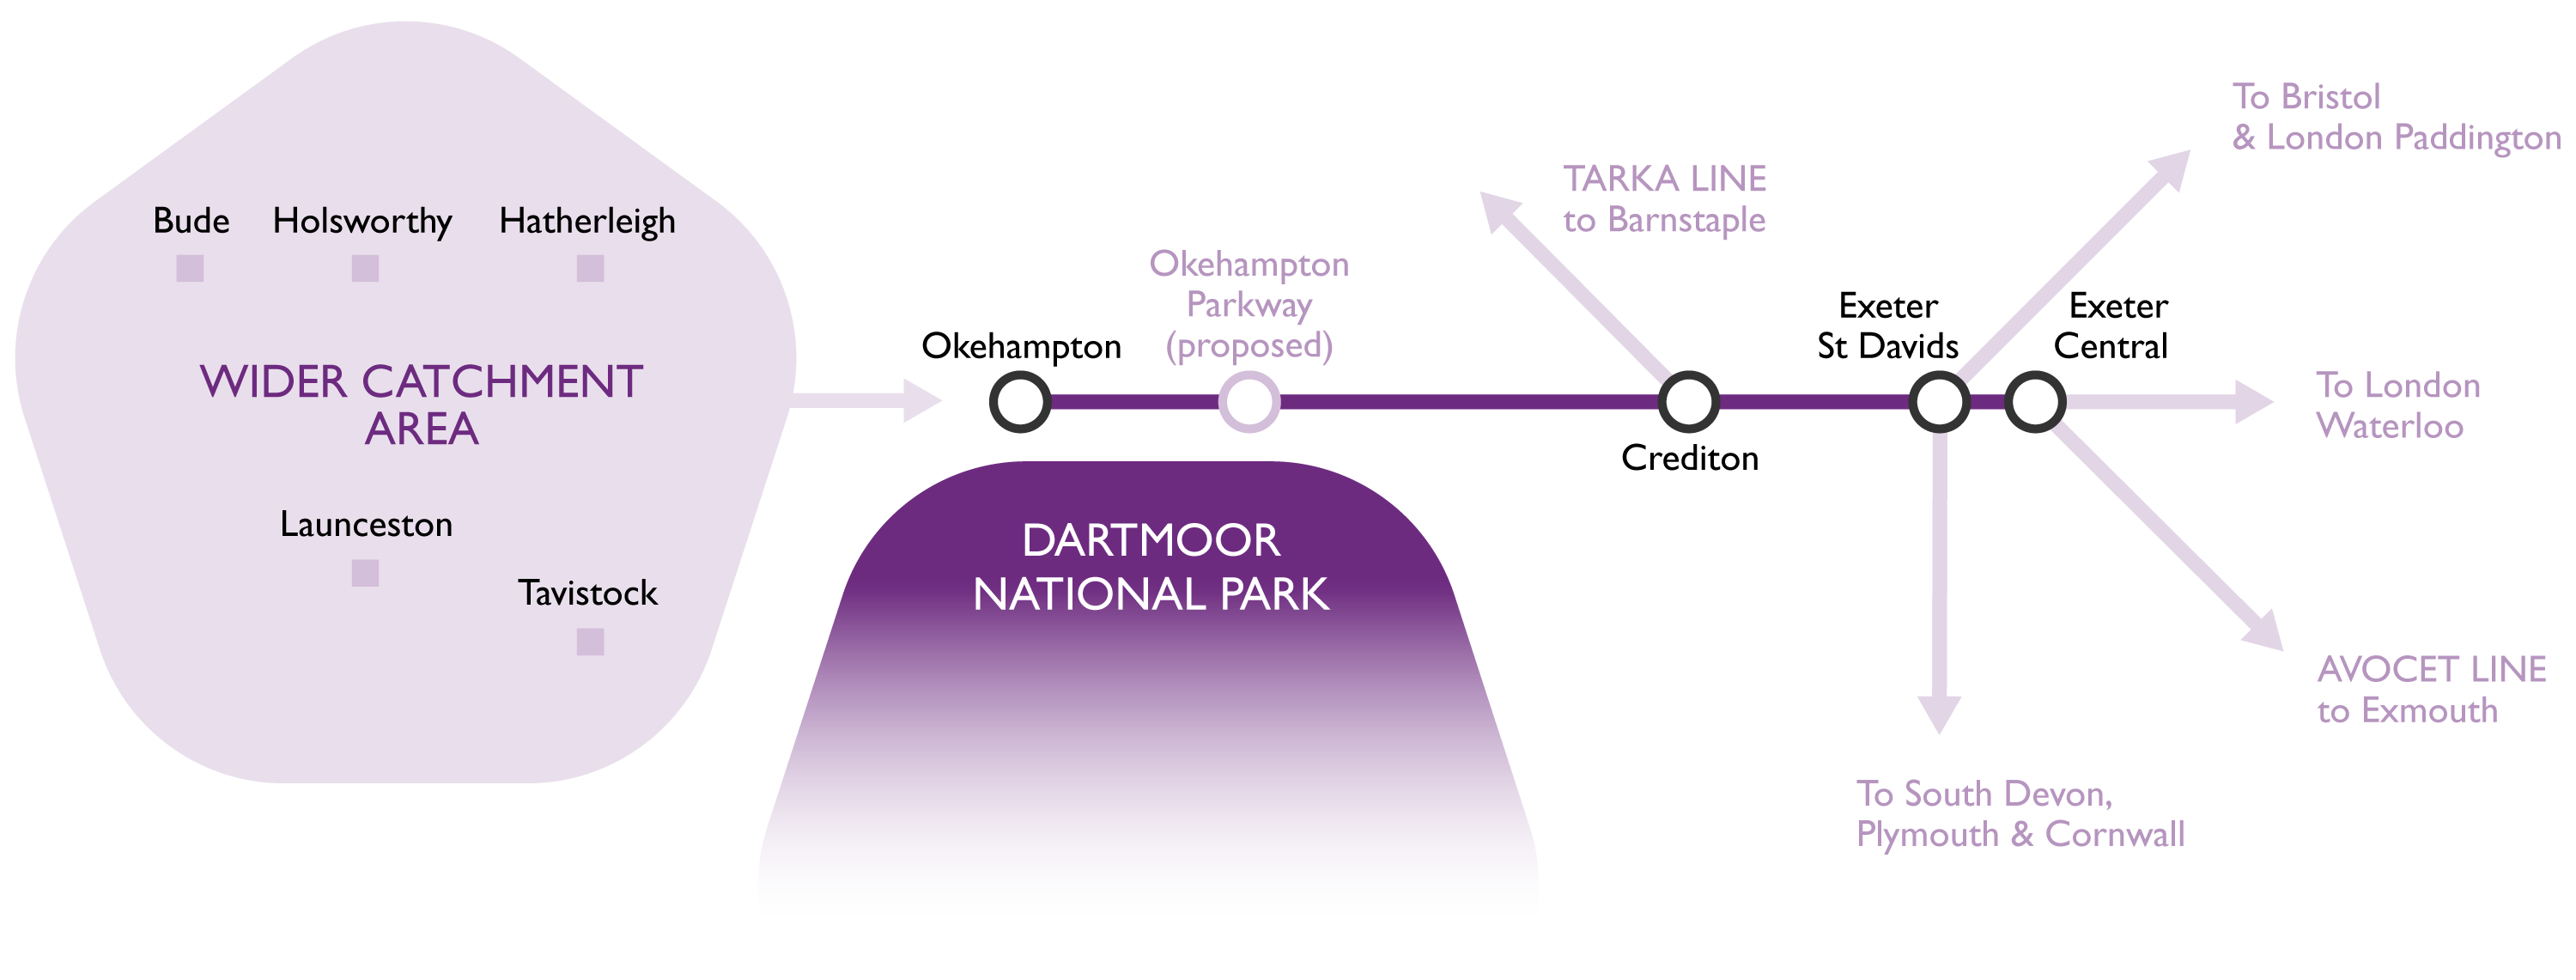 Dartmoor Line full map of Okehampton to Exeter route plus wider catchment and onward connections